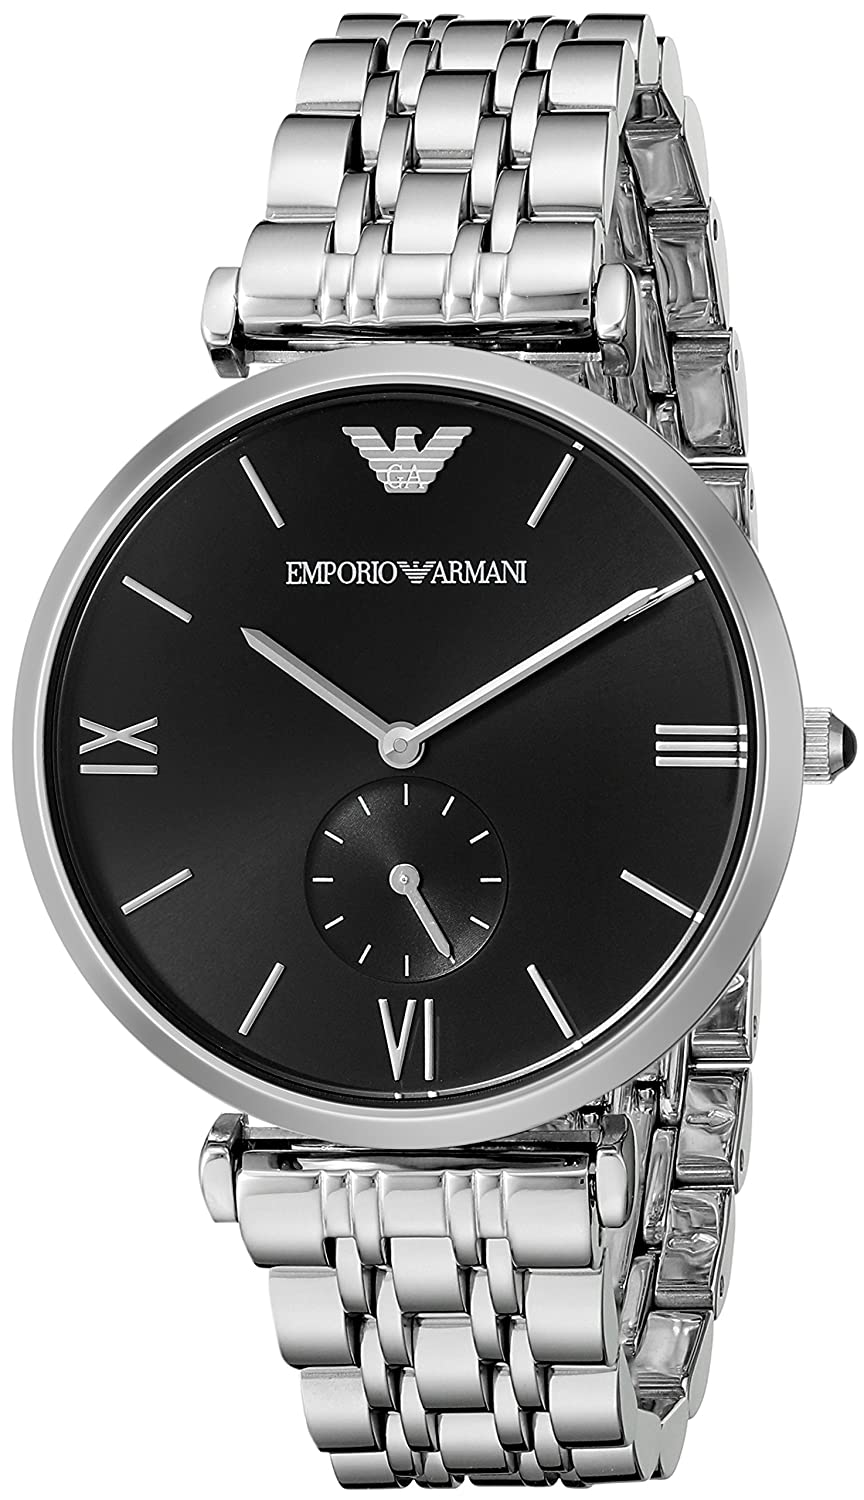 Amazon.com: Emporio Armani Mens AR1676 Retro Silver Watch: Emporio Armani: Watches